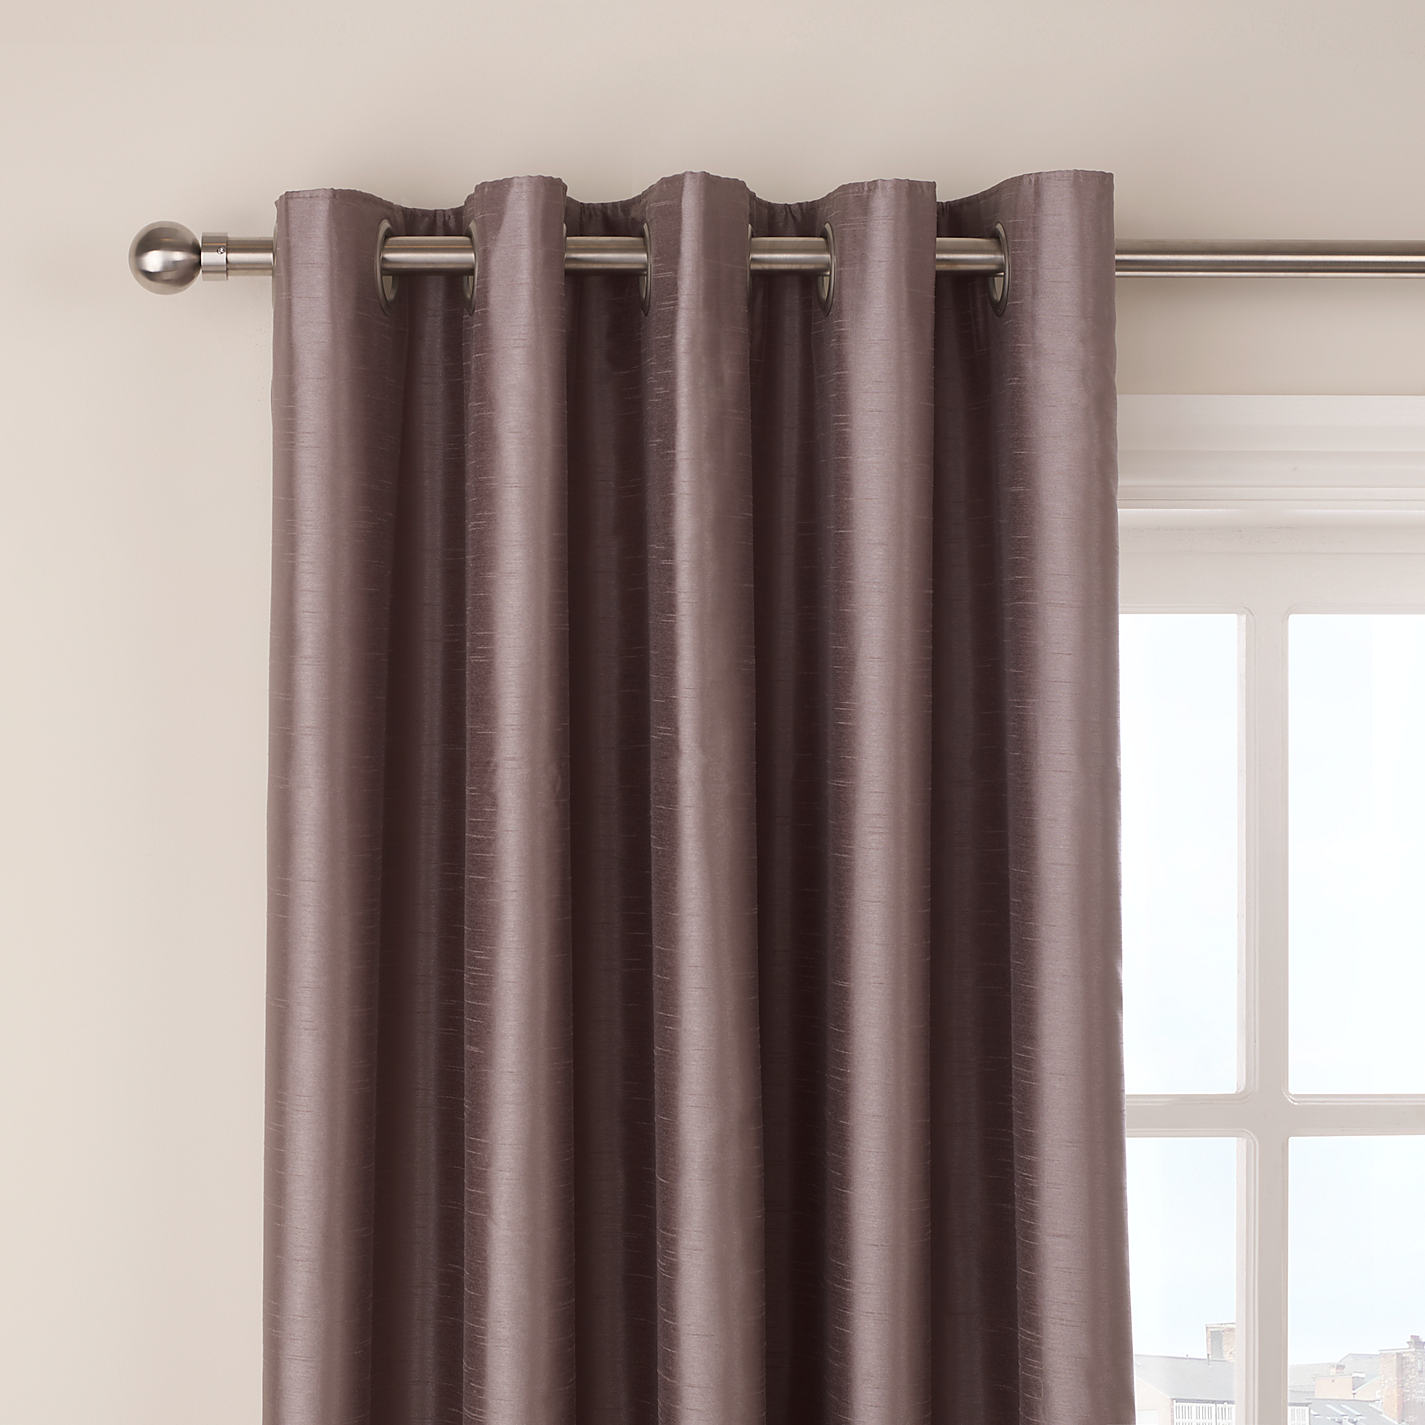 wonderful white window rods sheers rod door kohls patio room curtain for decor idea coral curtains drapes darkening blackout ombre curta blind gray doors and chevron